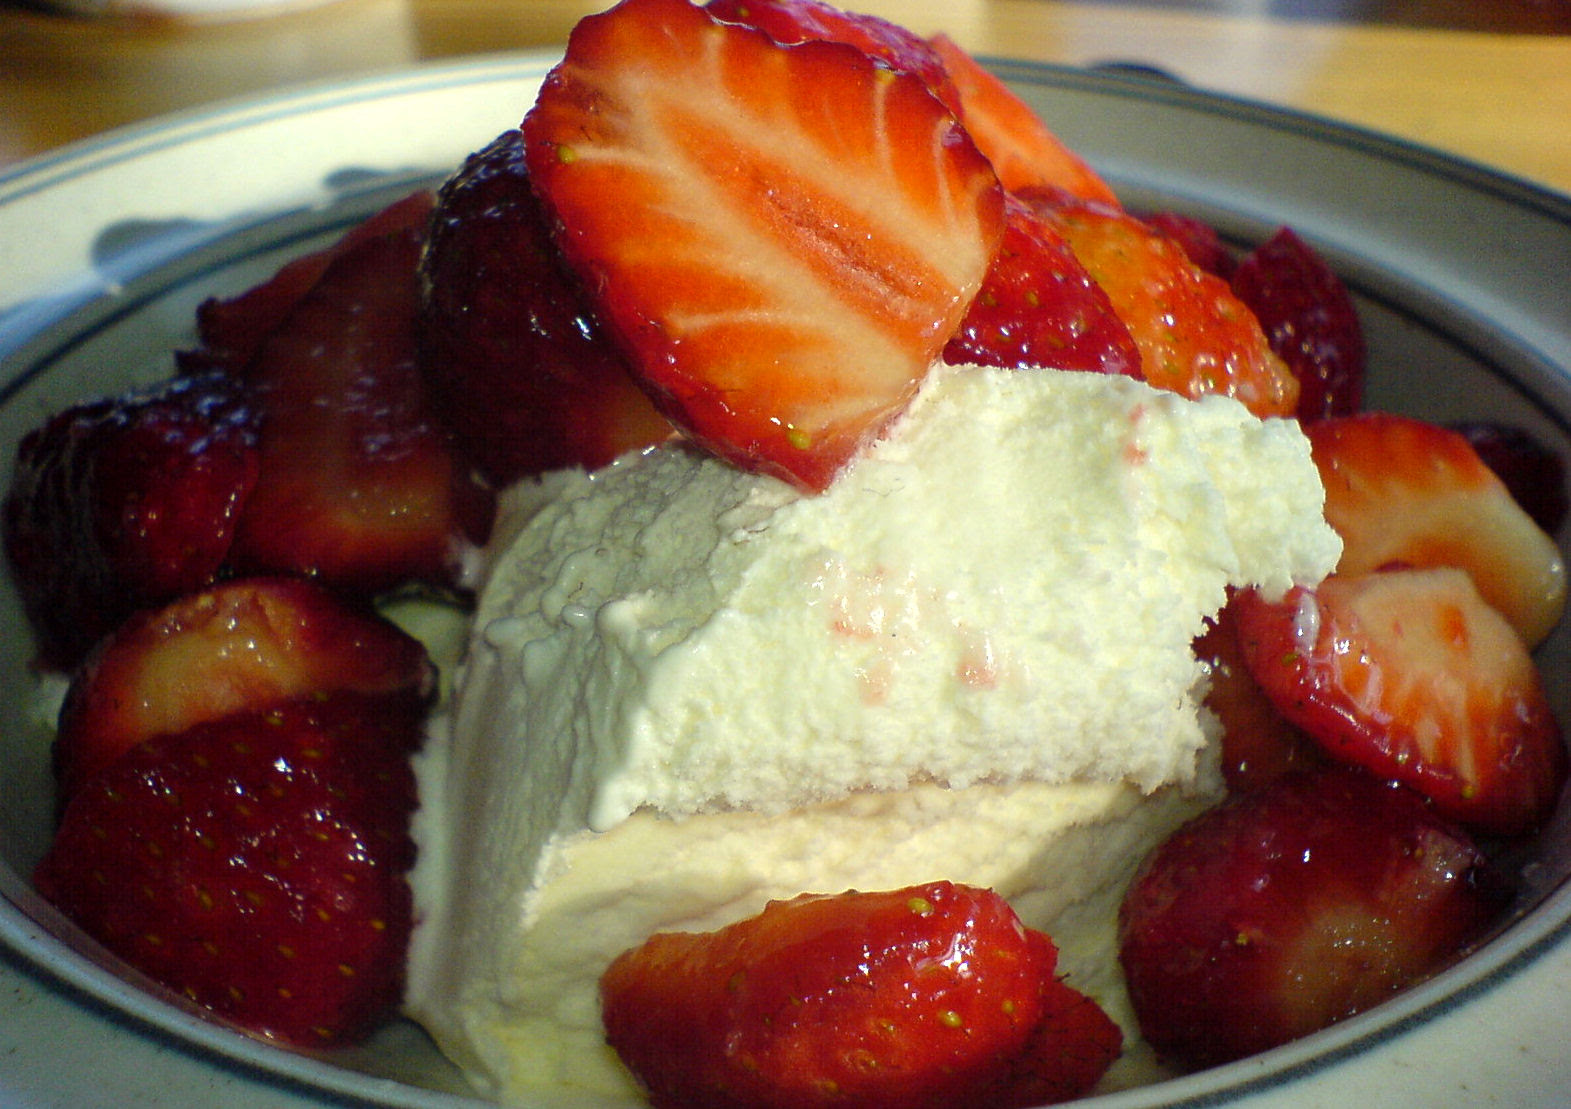 http://upload.wikimedia.org/wikipedia/commons/8/8e/Strawberry_ice_cream_dessert.jpg